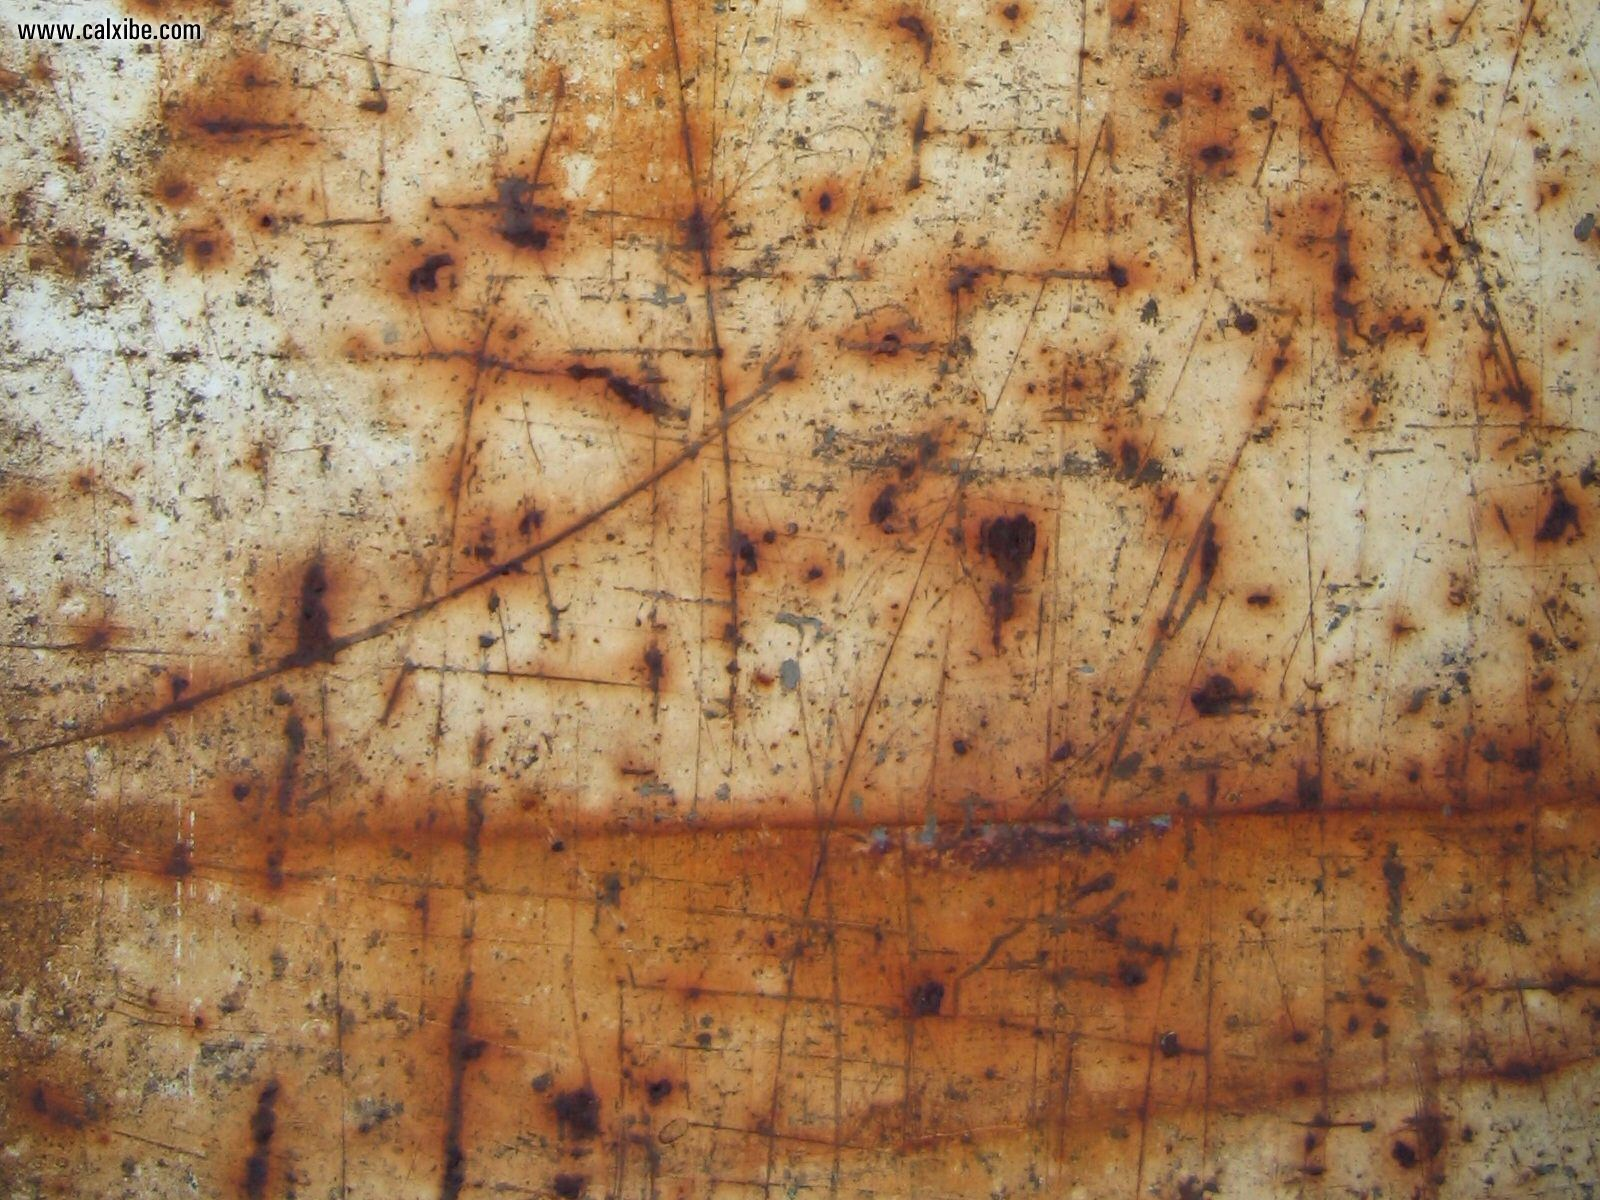 Development Rusty Scratched Metal picture nr 15958 1600x1200